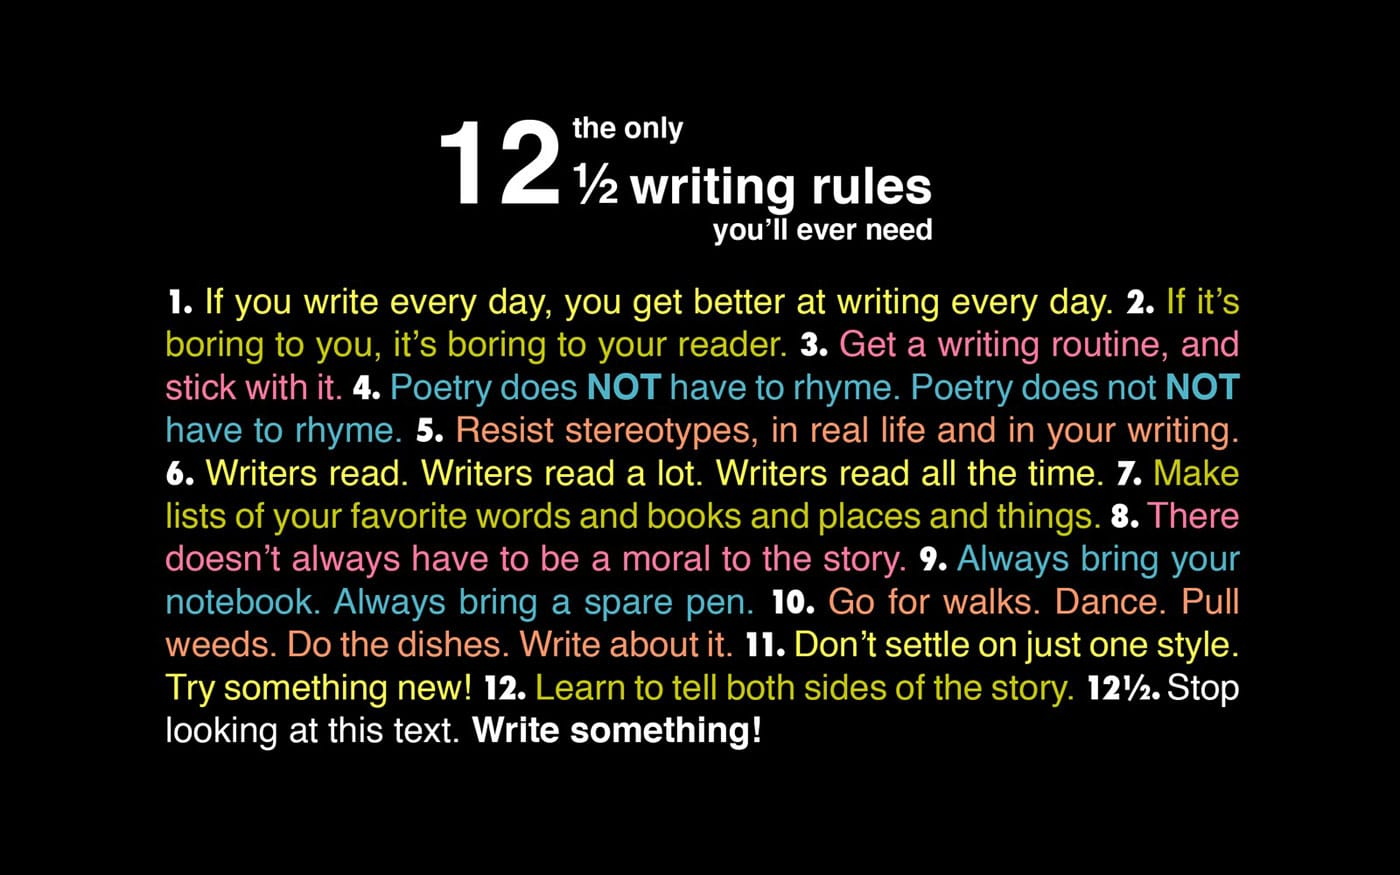 The Only 12 ½ Writing Rules You'll Ever Need [Chart]